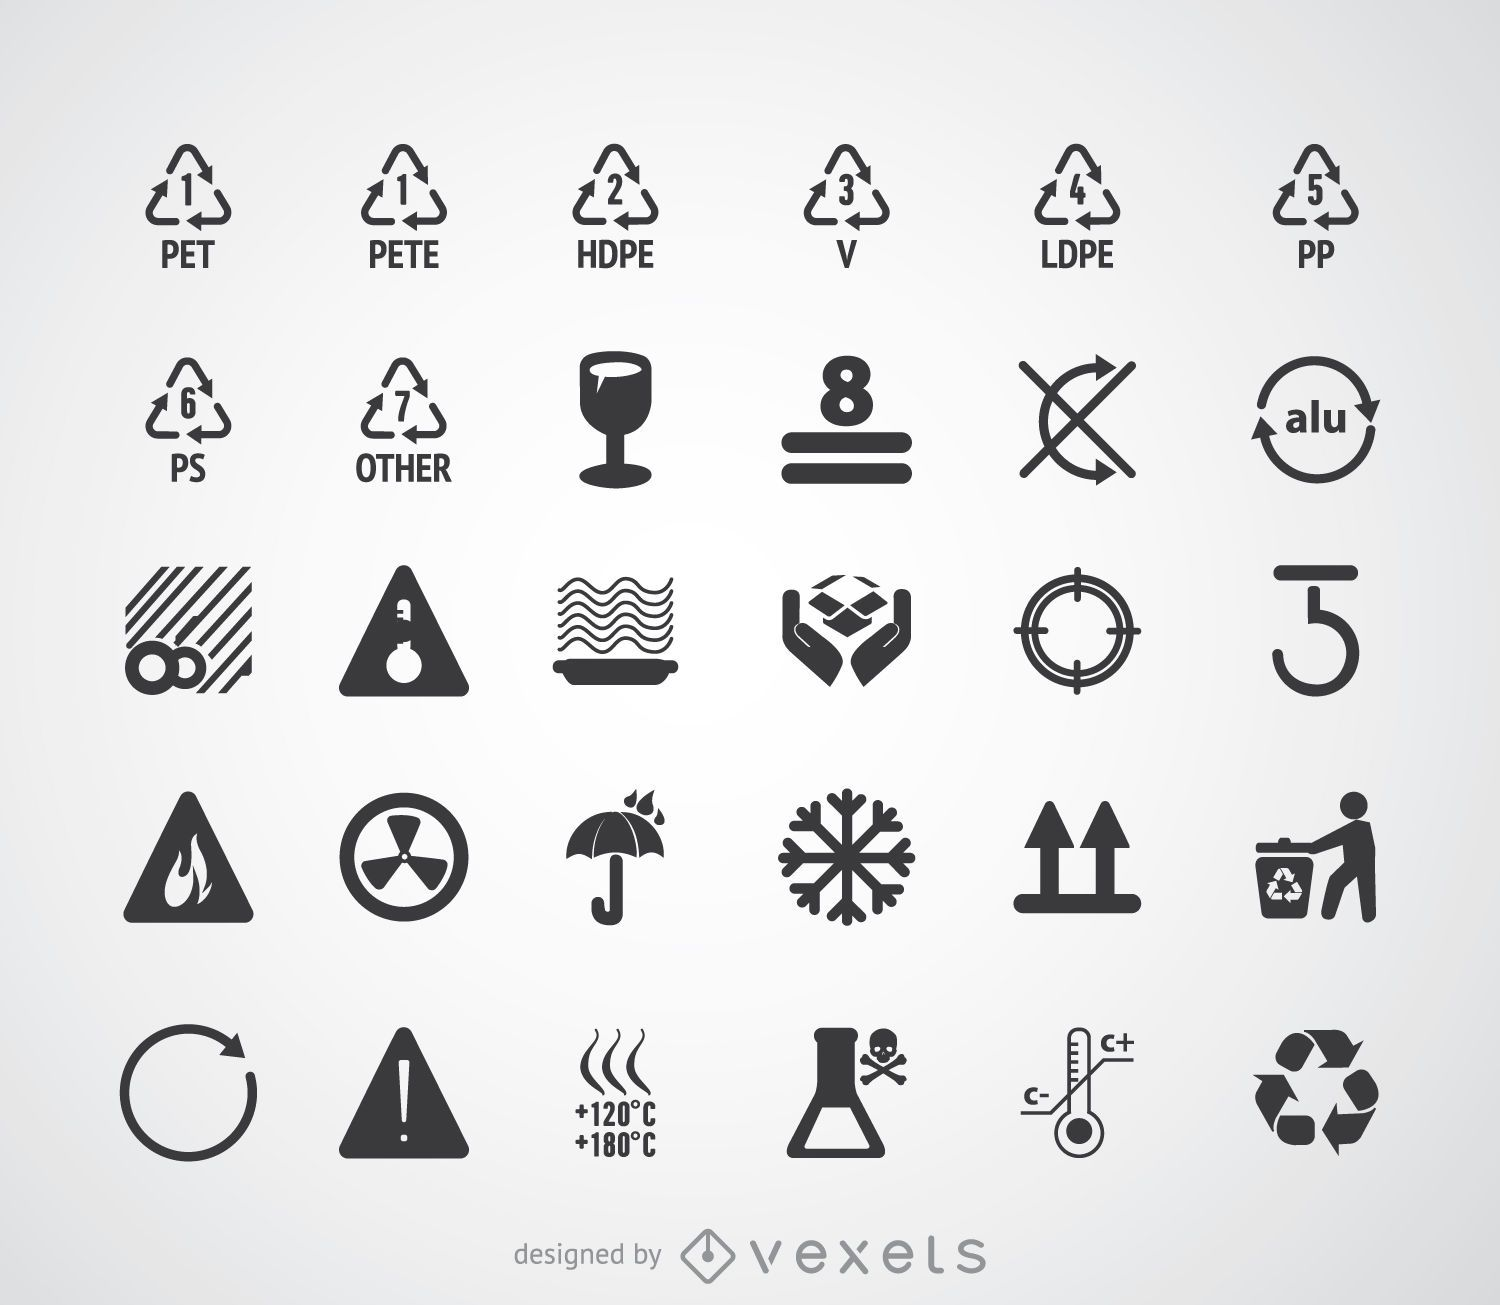 Recycling Symbols And Pictograms Set Vector Download